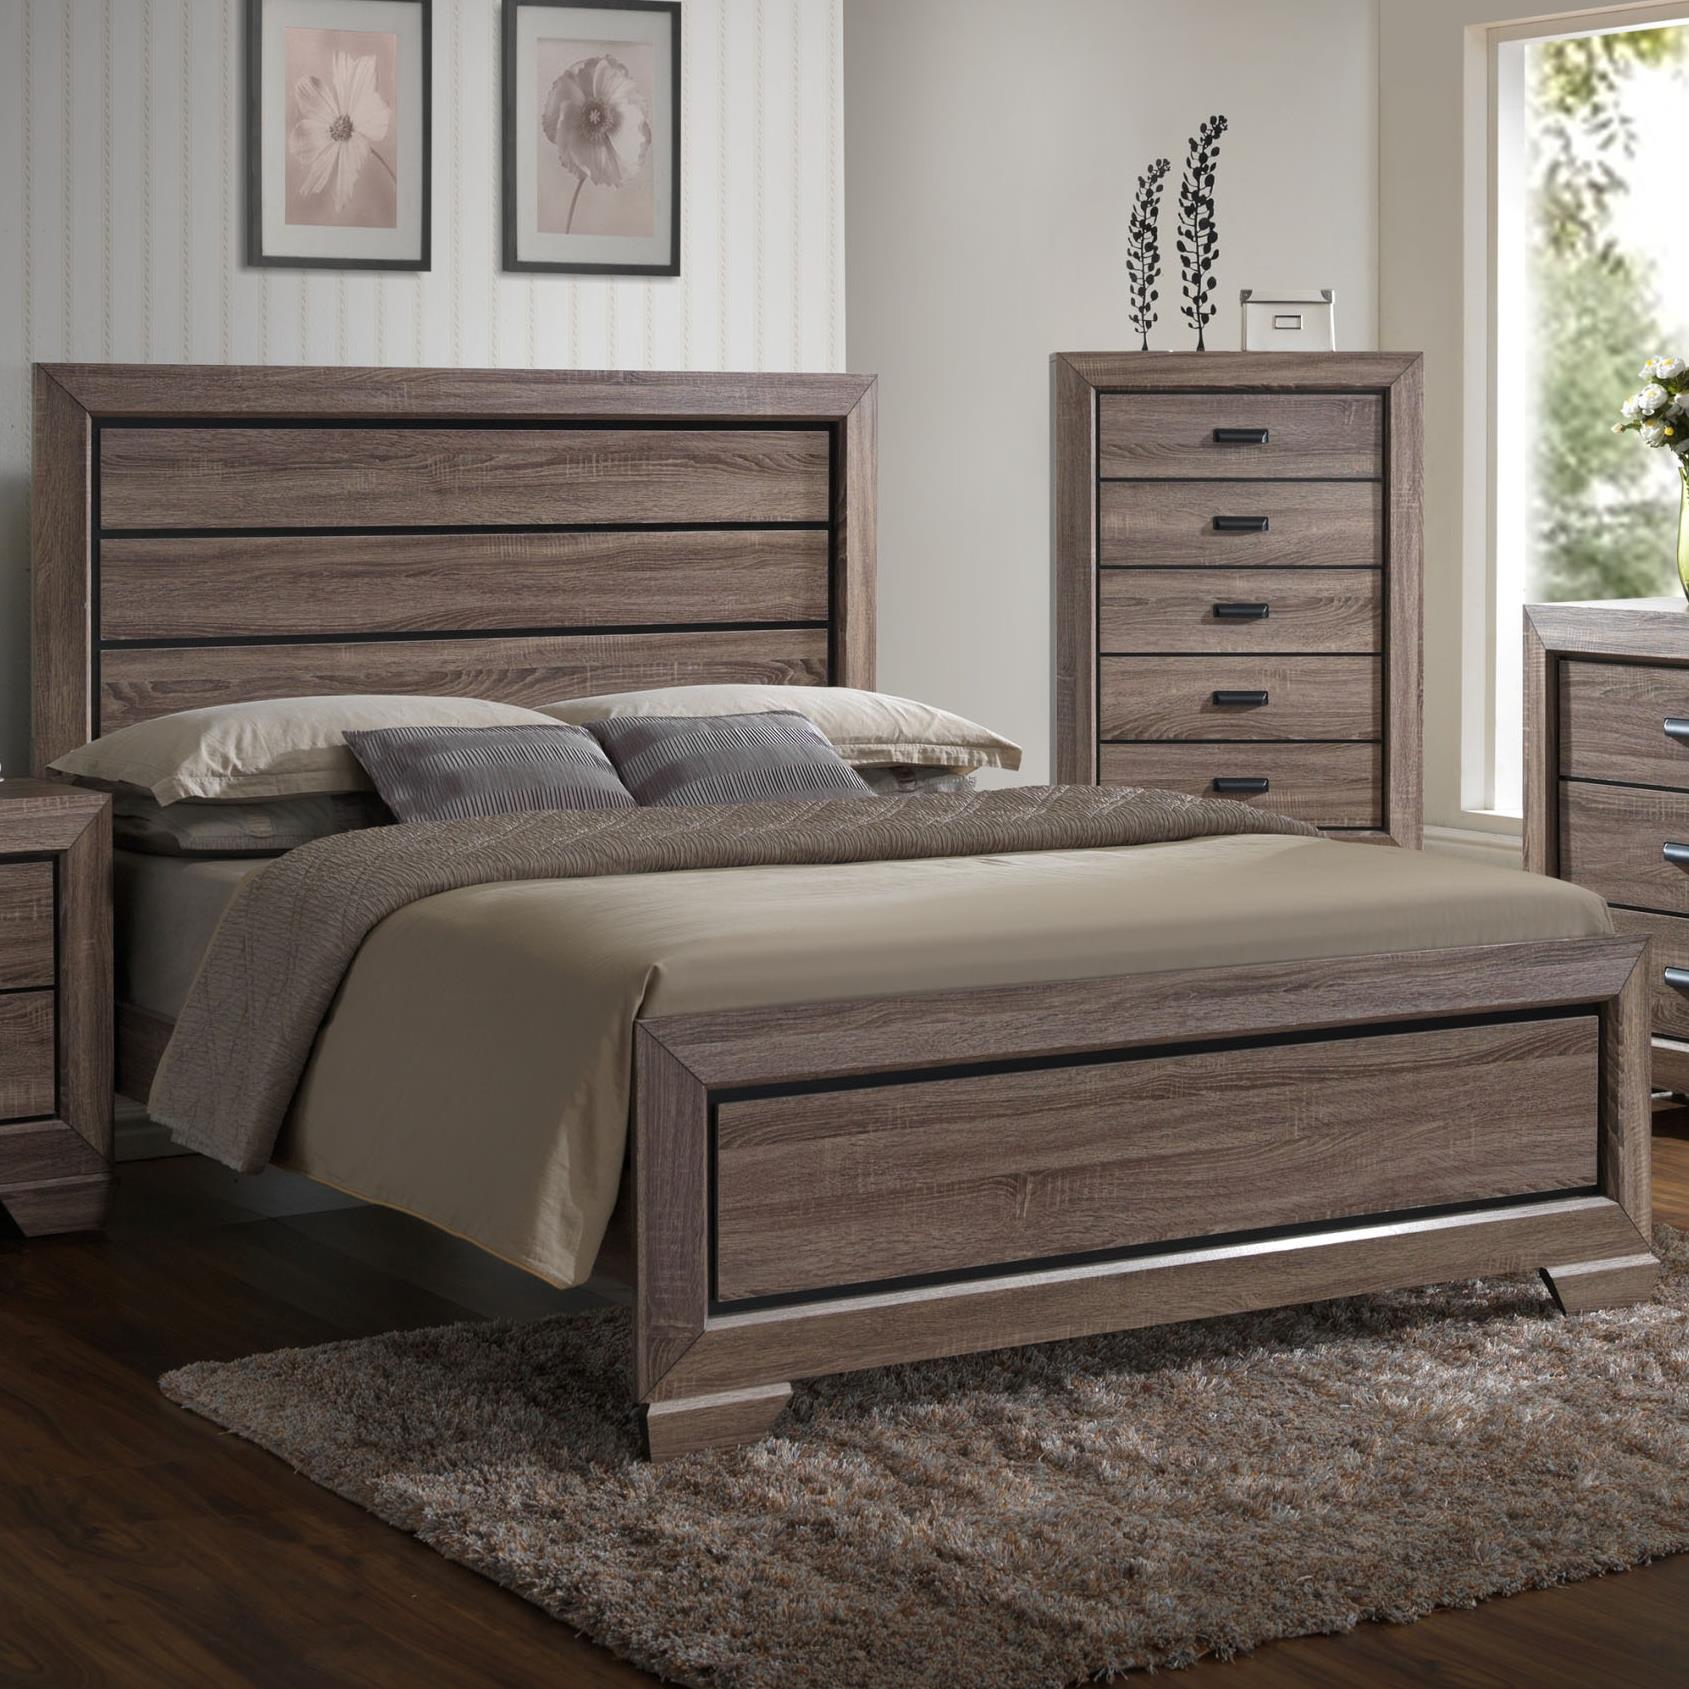 Farrow King Headboard and Footboard Bed by Crown Mark at Northeast Factory Direct